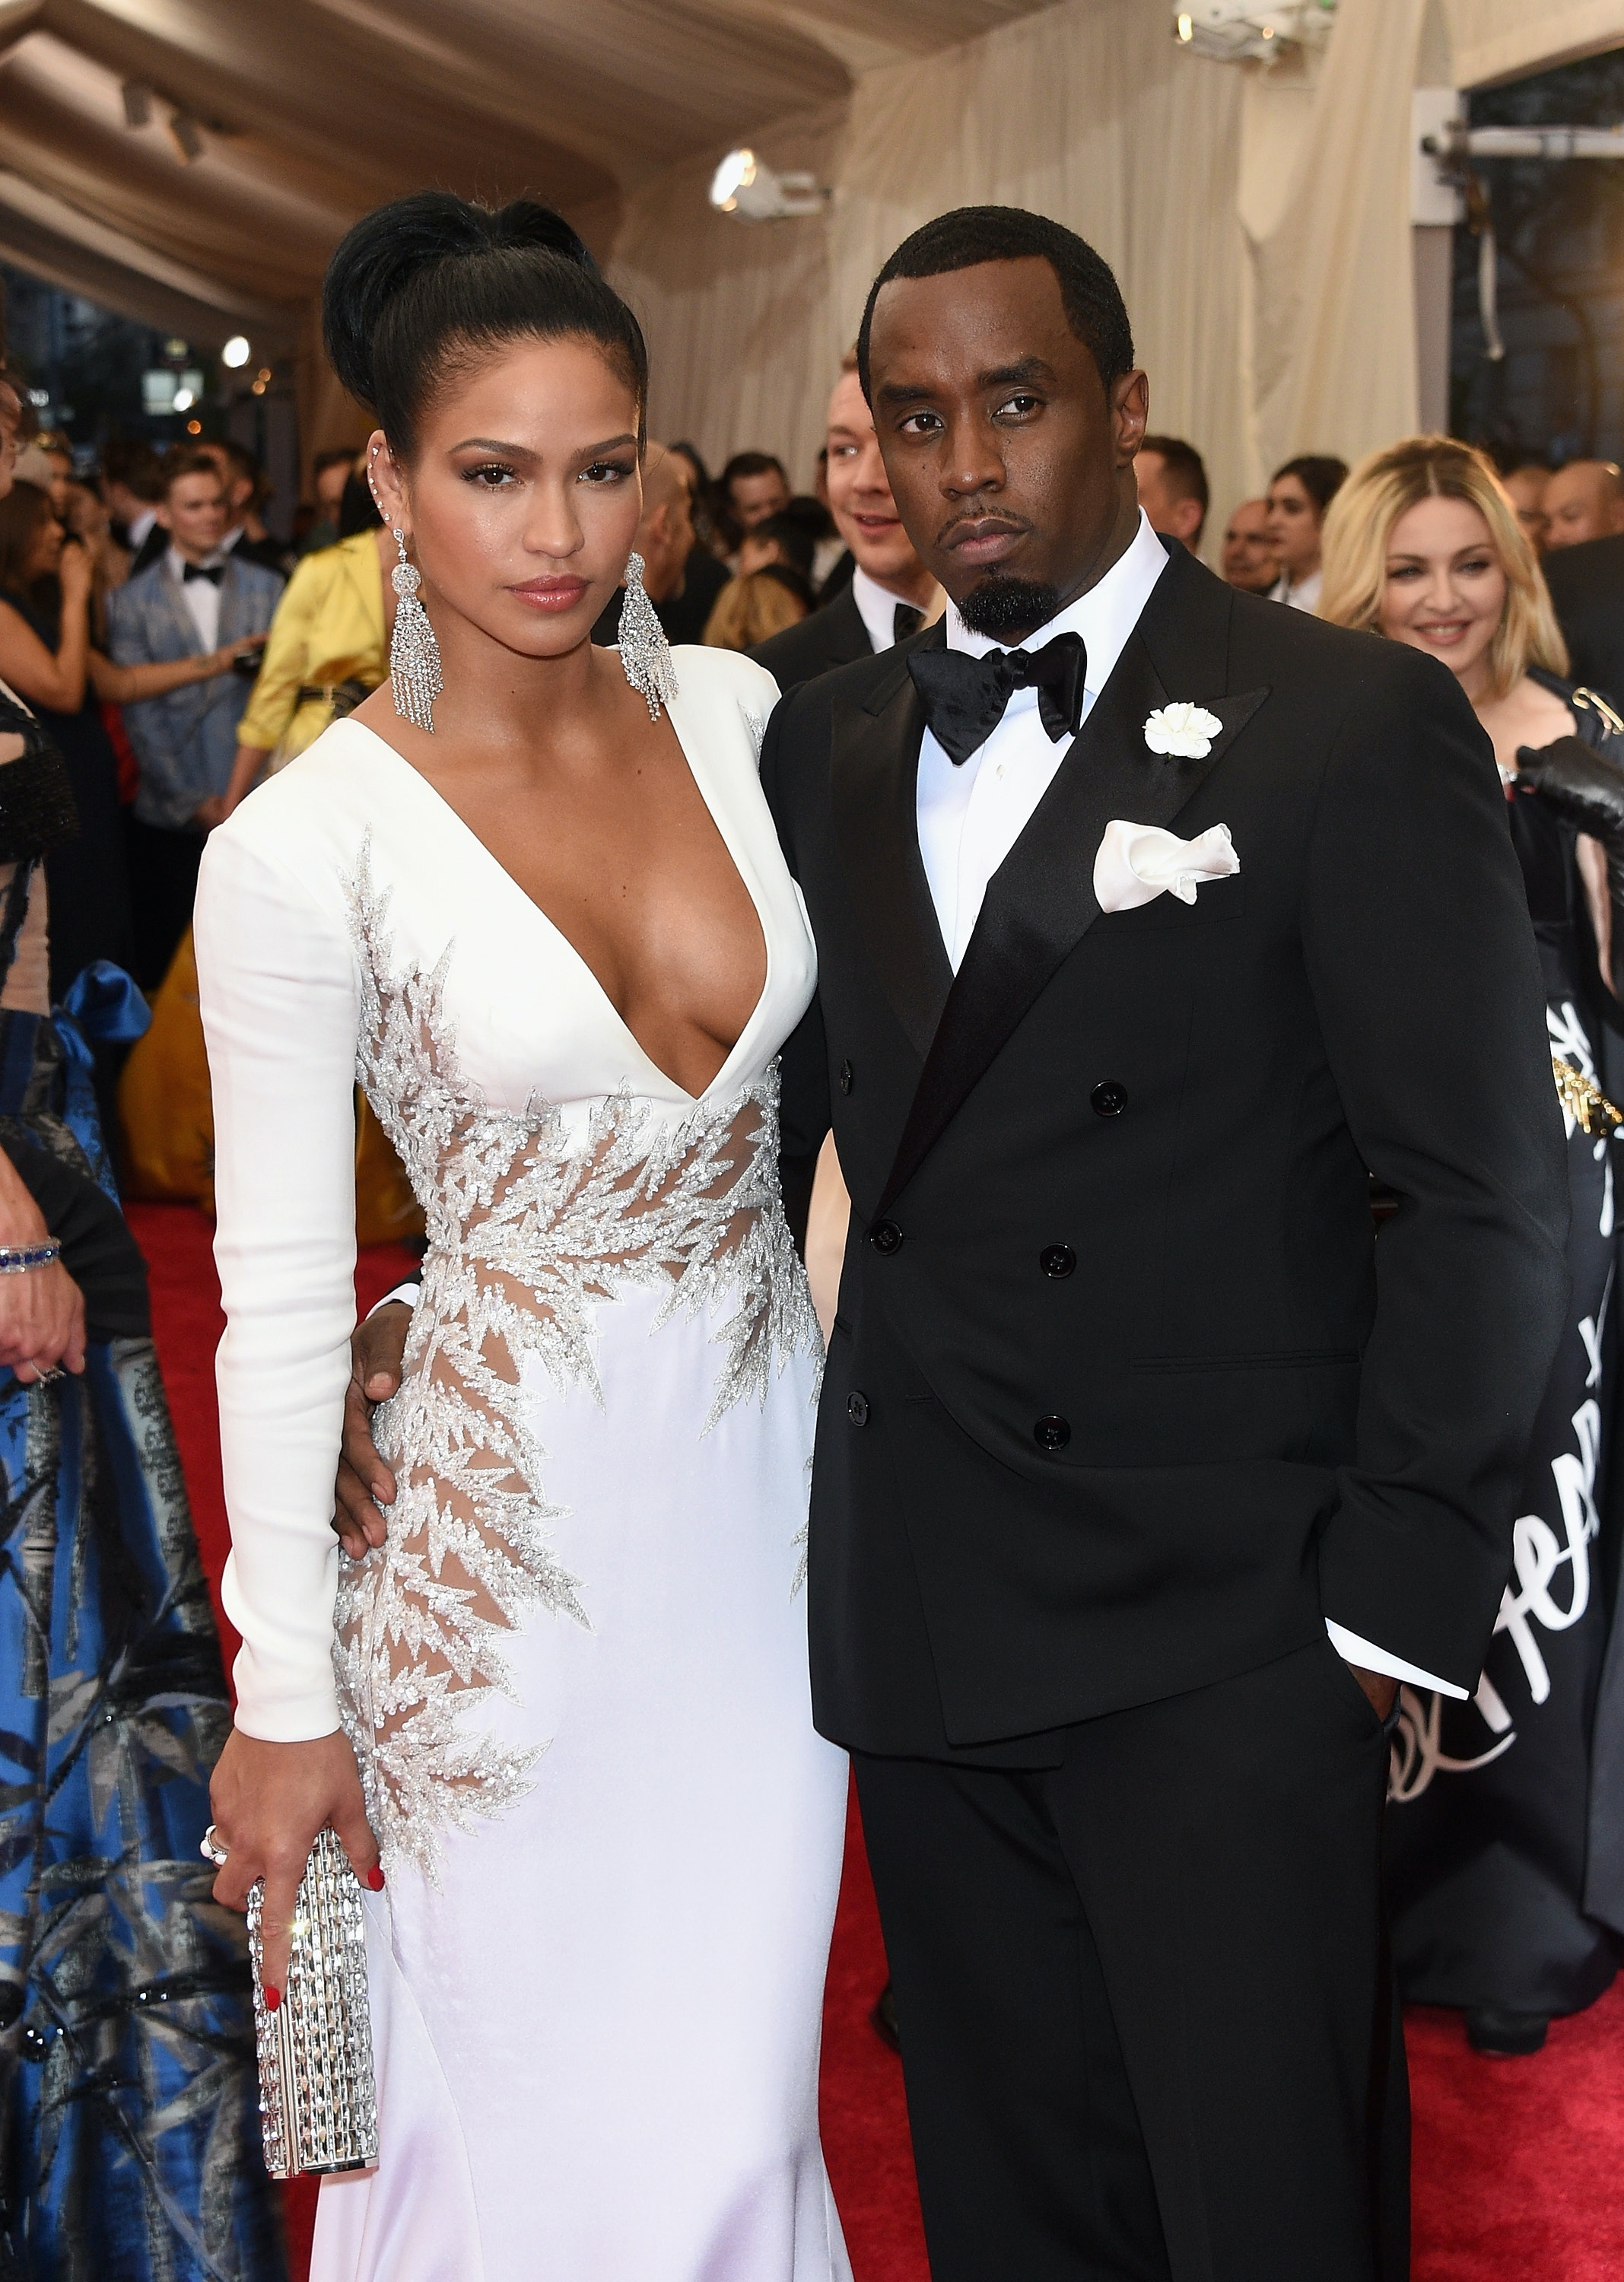 P diddy dating life